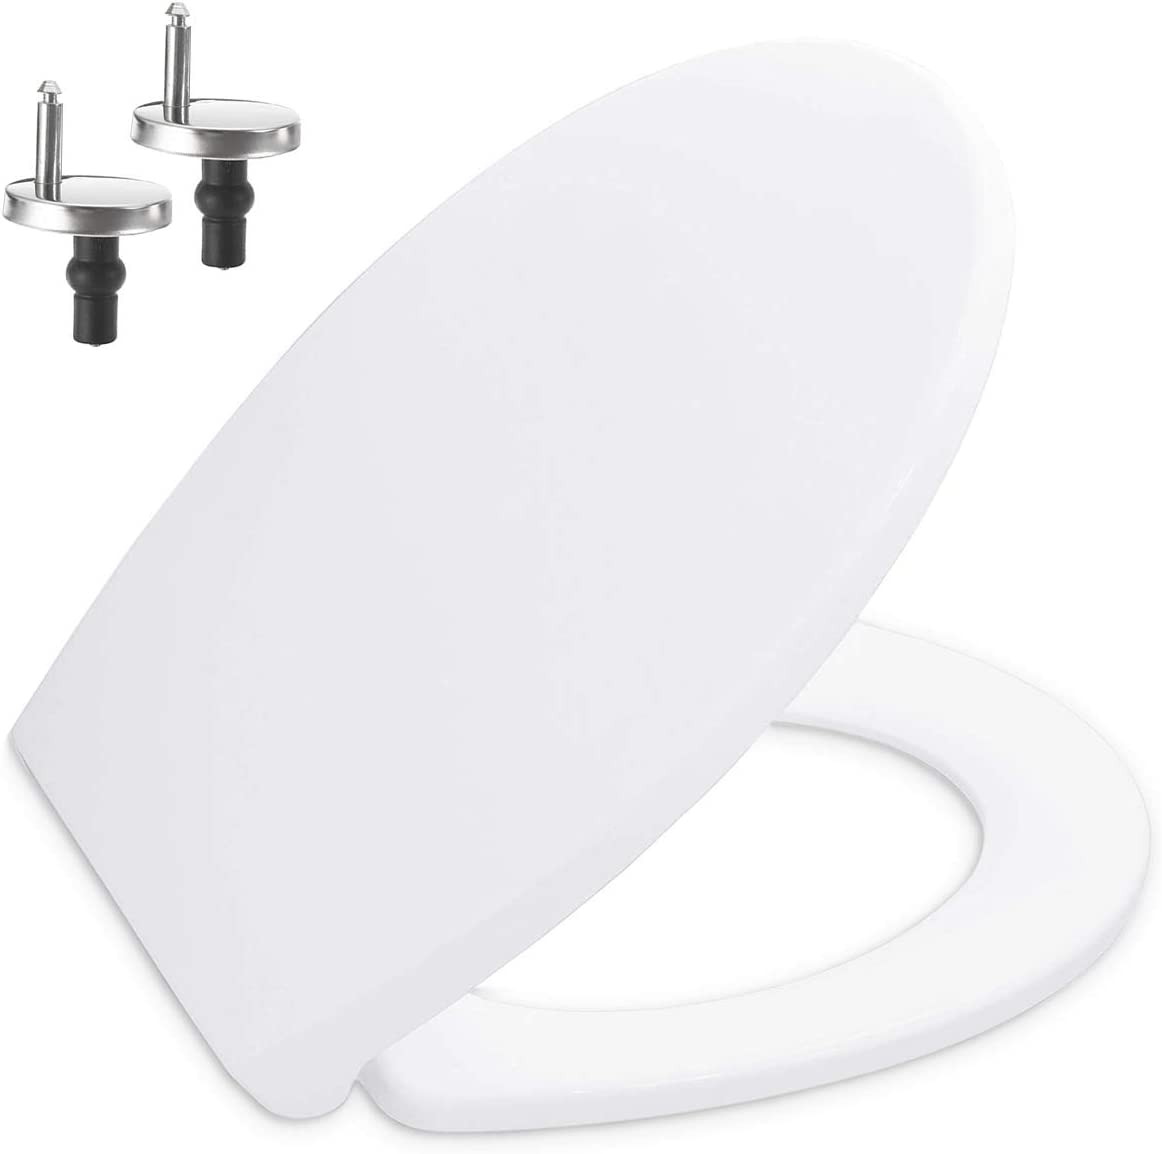 Toilet Seat featuring Soft-Close, Easy Clean, Top Fixing Hinges / OVAL LOO SEAT COVER (Polypropylene Plastic (PP))